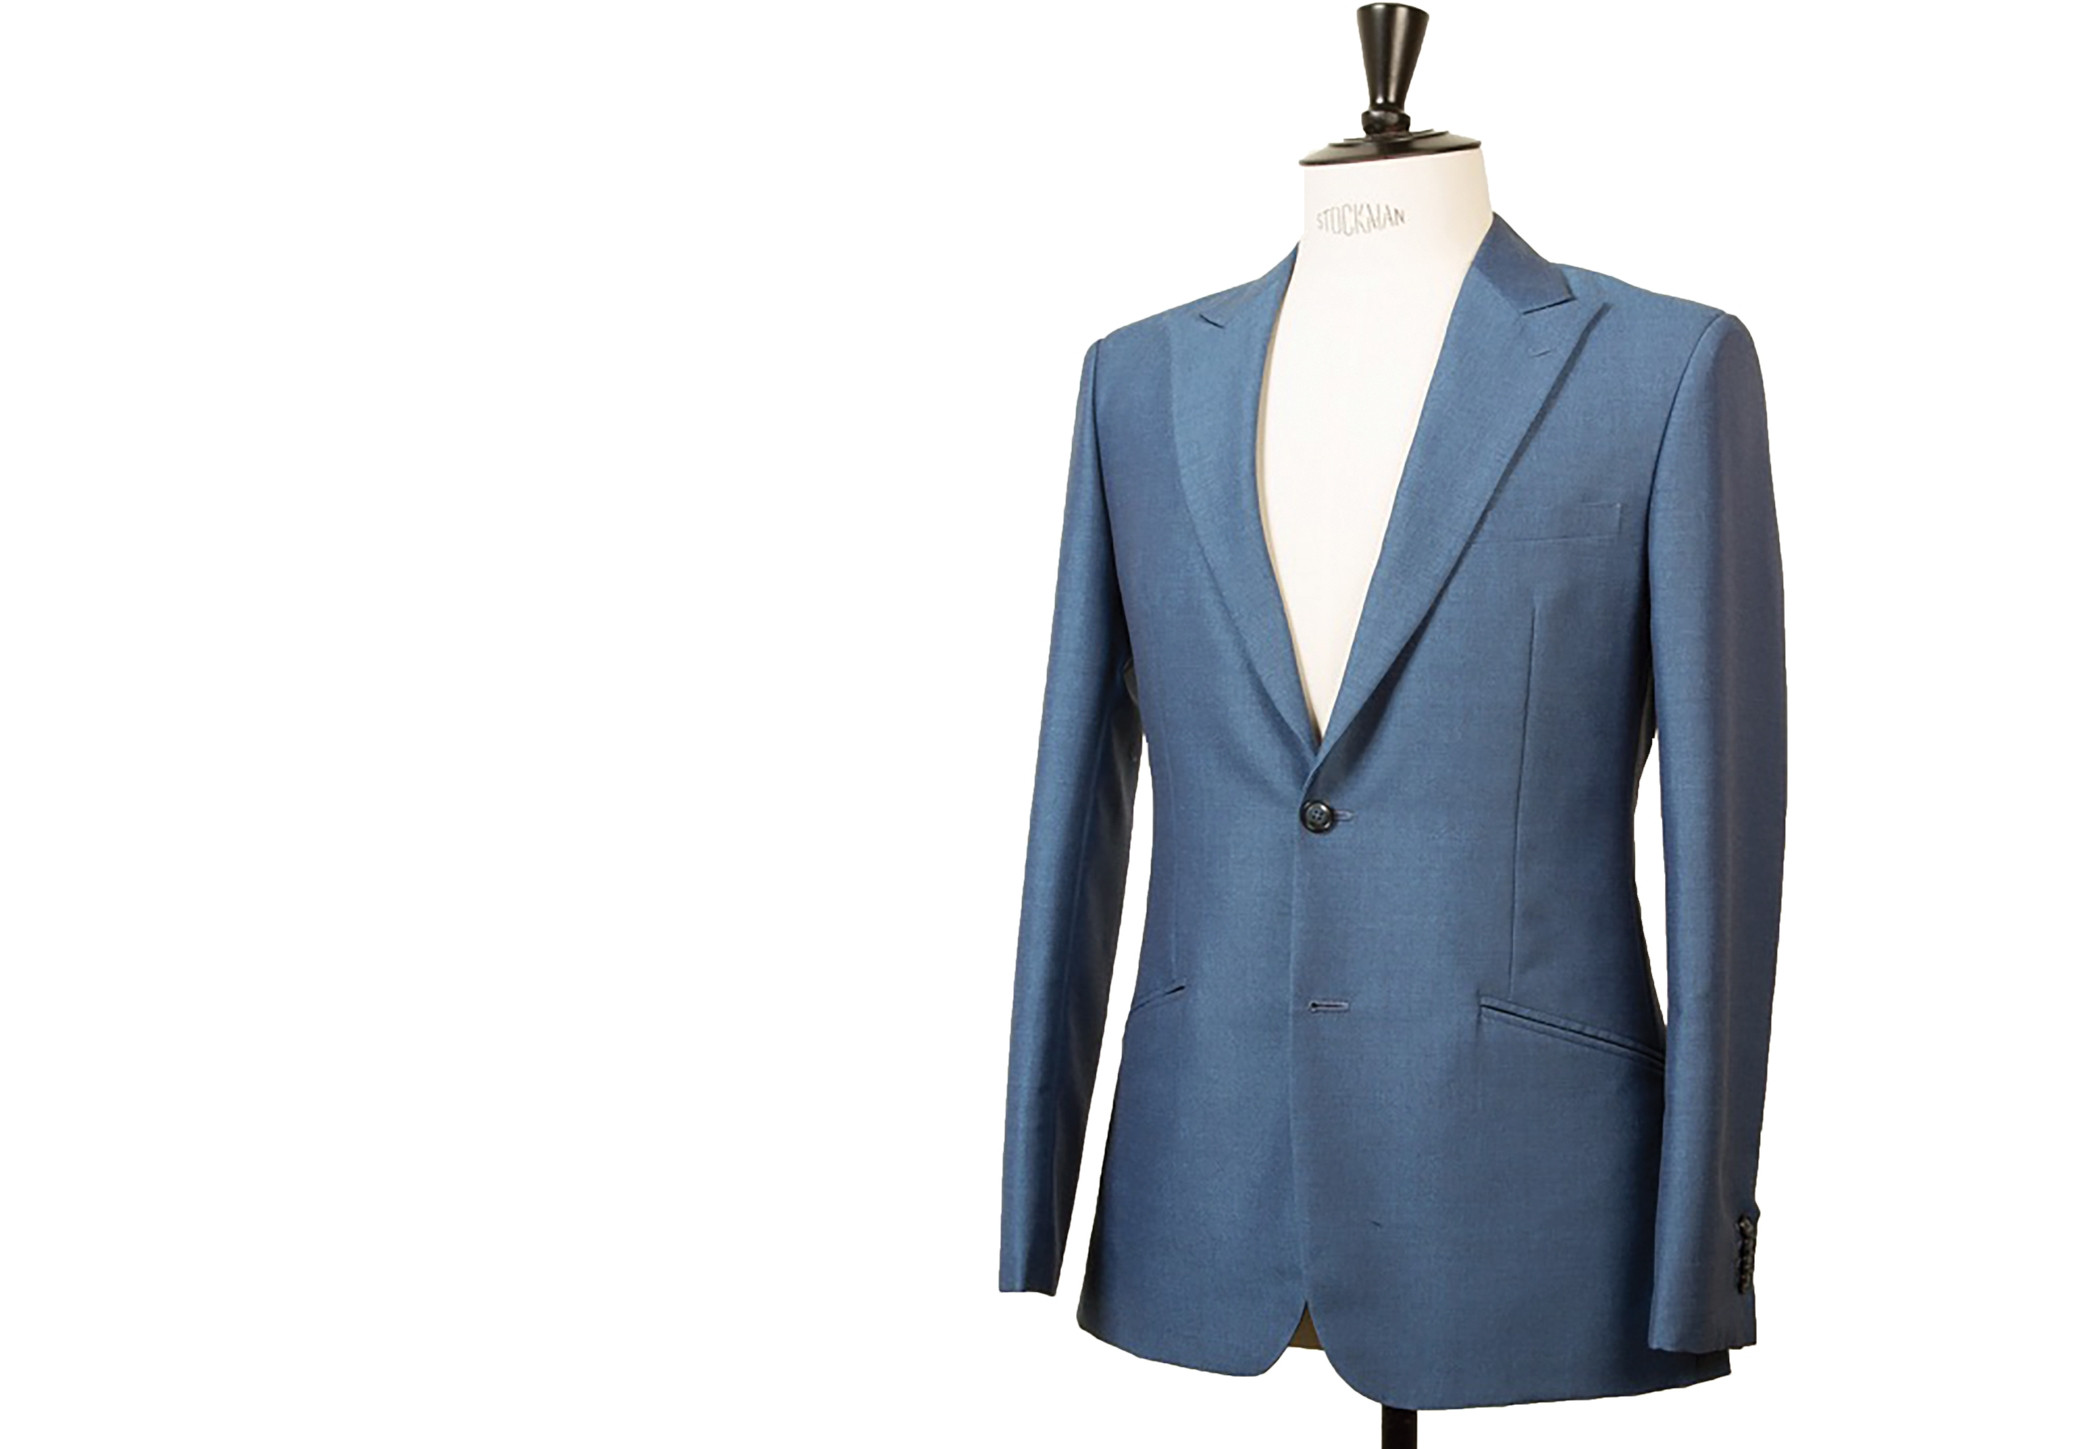 8. After the second fitting:  Further alterations are made and the garment is finished and pressed. Button holes, felling and edge stitching are completed, all by hand. The coat is then pressed before the last fitting. Clothing is then pressed a final time before delivery.